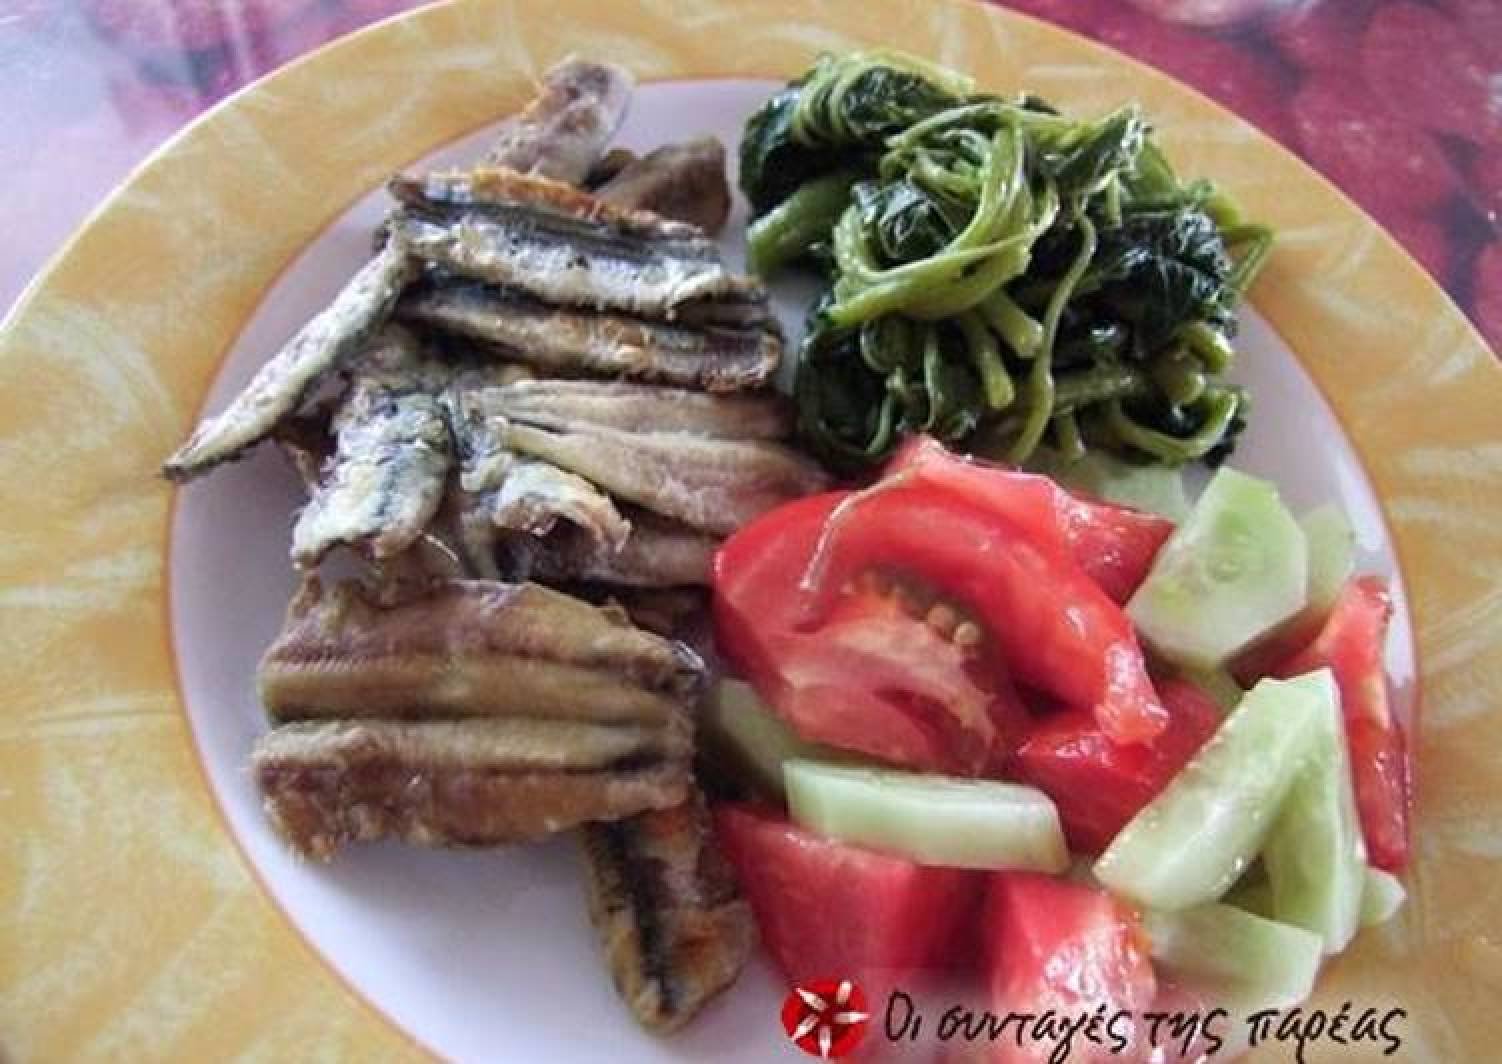 Anchovies without any regrets